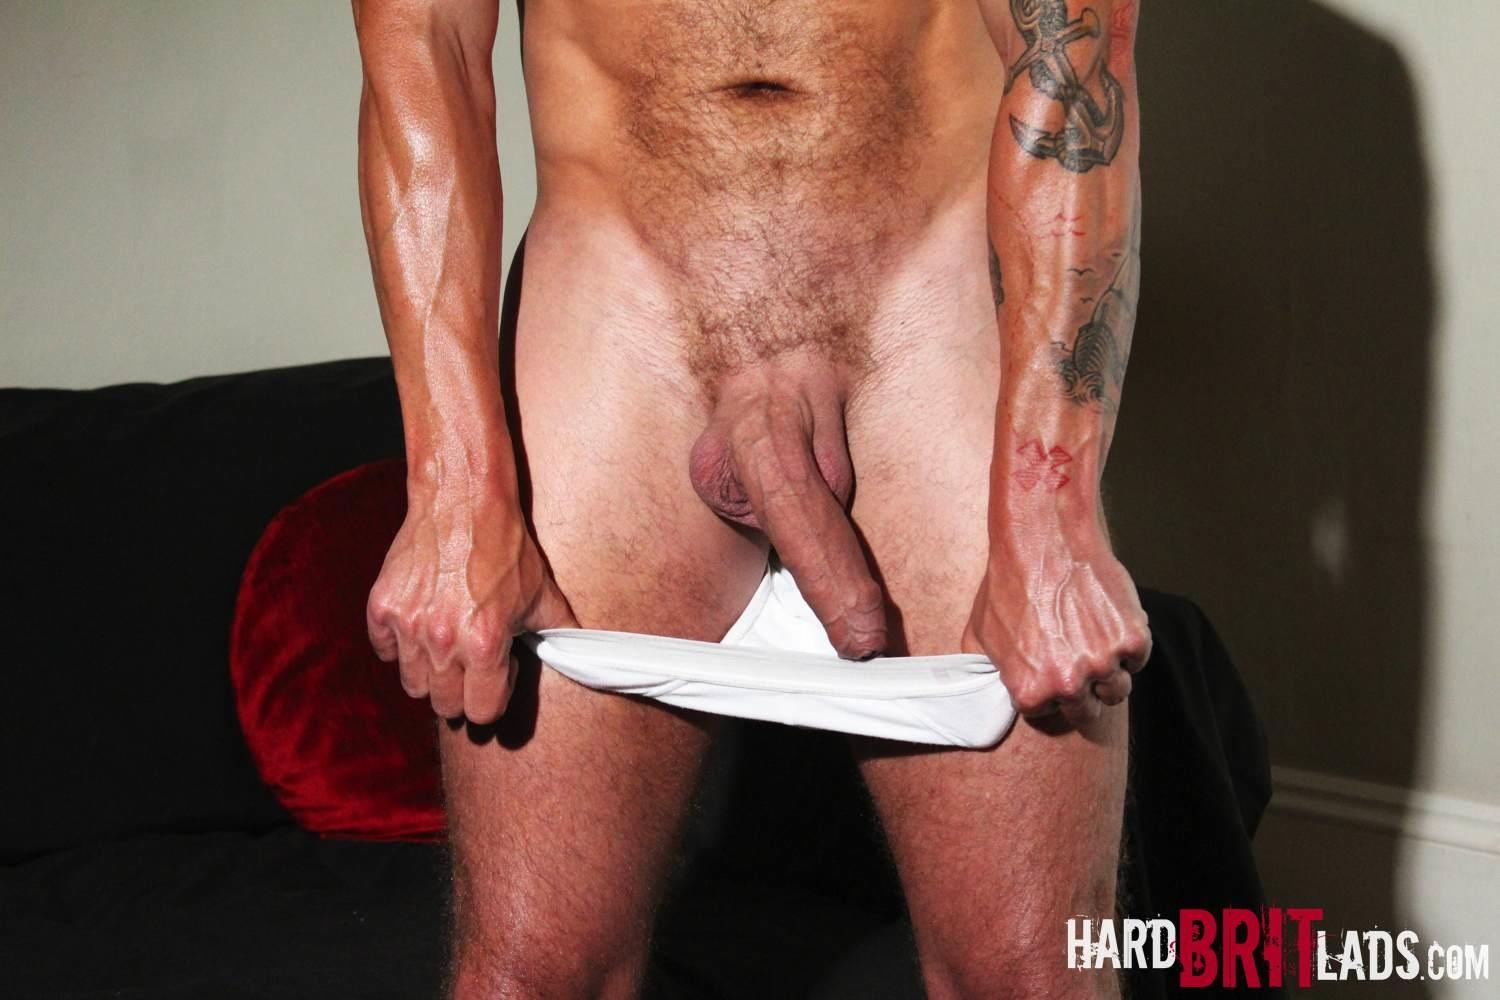 Hard-Brit-Lads-Sam-Porter-British-Muscle-Hunk-With-A-big-Uncut-cock-Amateur-Gay-Porn-07 Tatted Muscle British Hunk Sam Porter Jerking His Big Uncut Cock